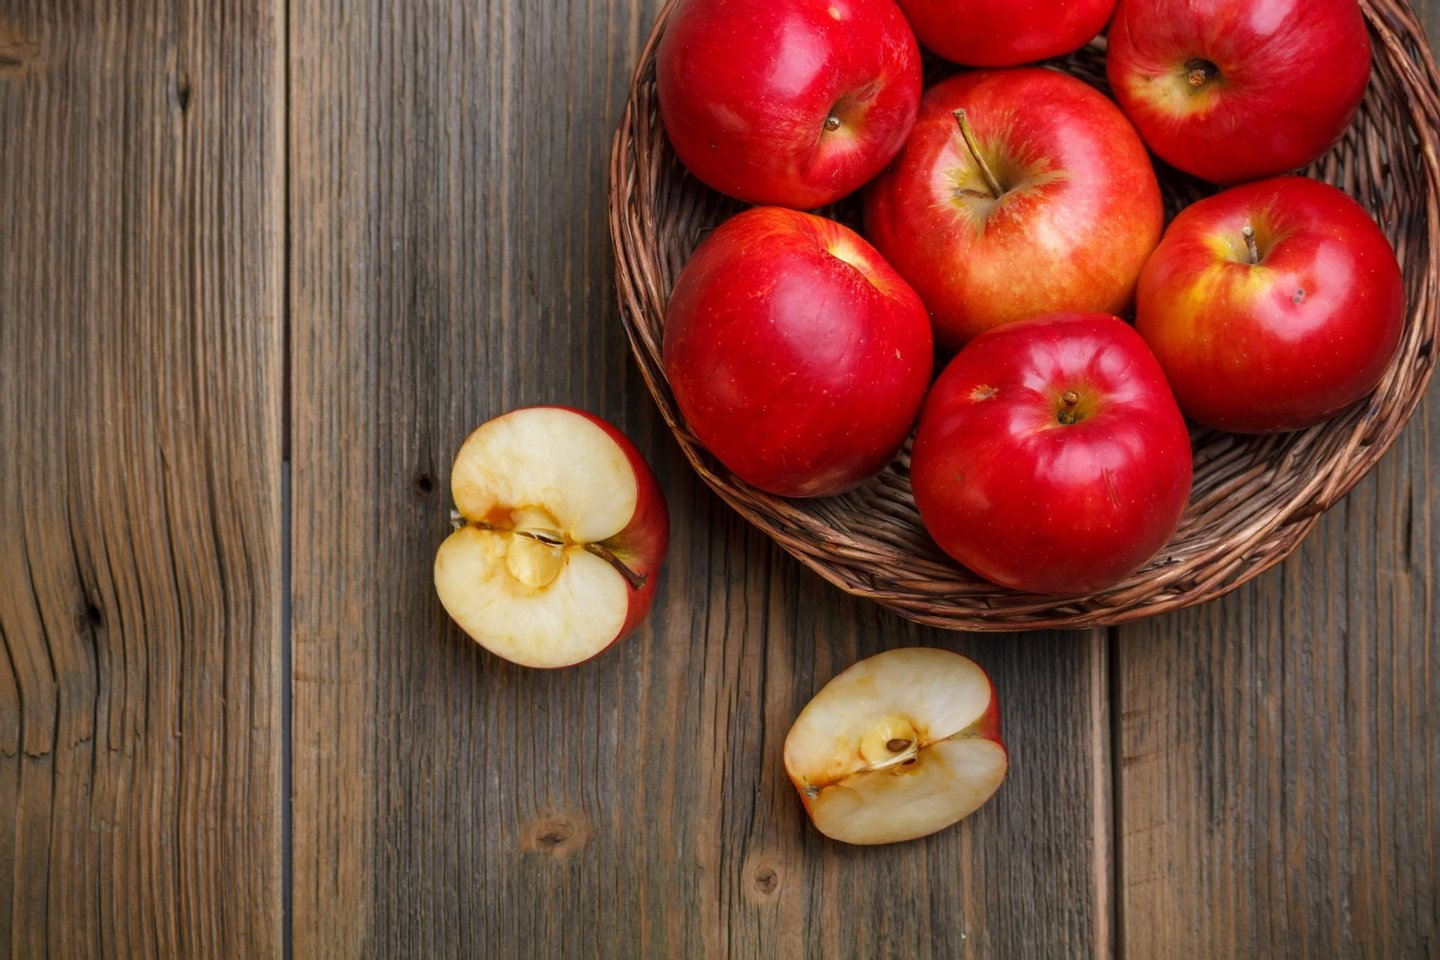 Apple, Basket, Directly Above, Food, Freshness, Fruit, Healthy Eating, Nature, No People, Old, Organic, Raw, Red, Refreshment, Ripe, Table, Wood,